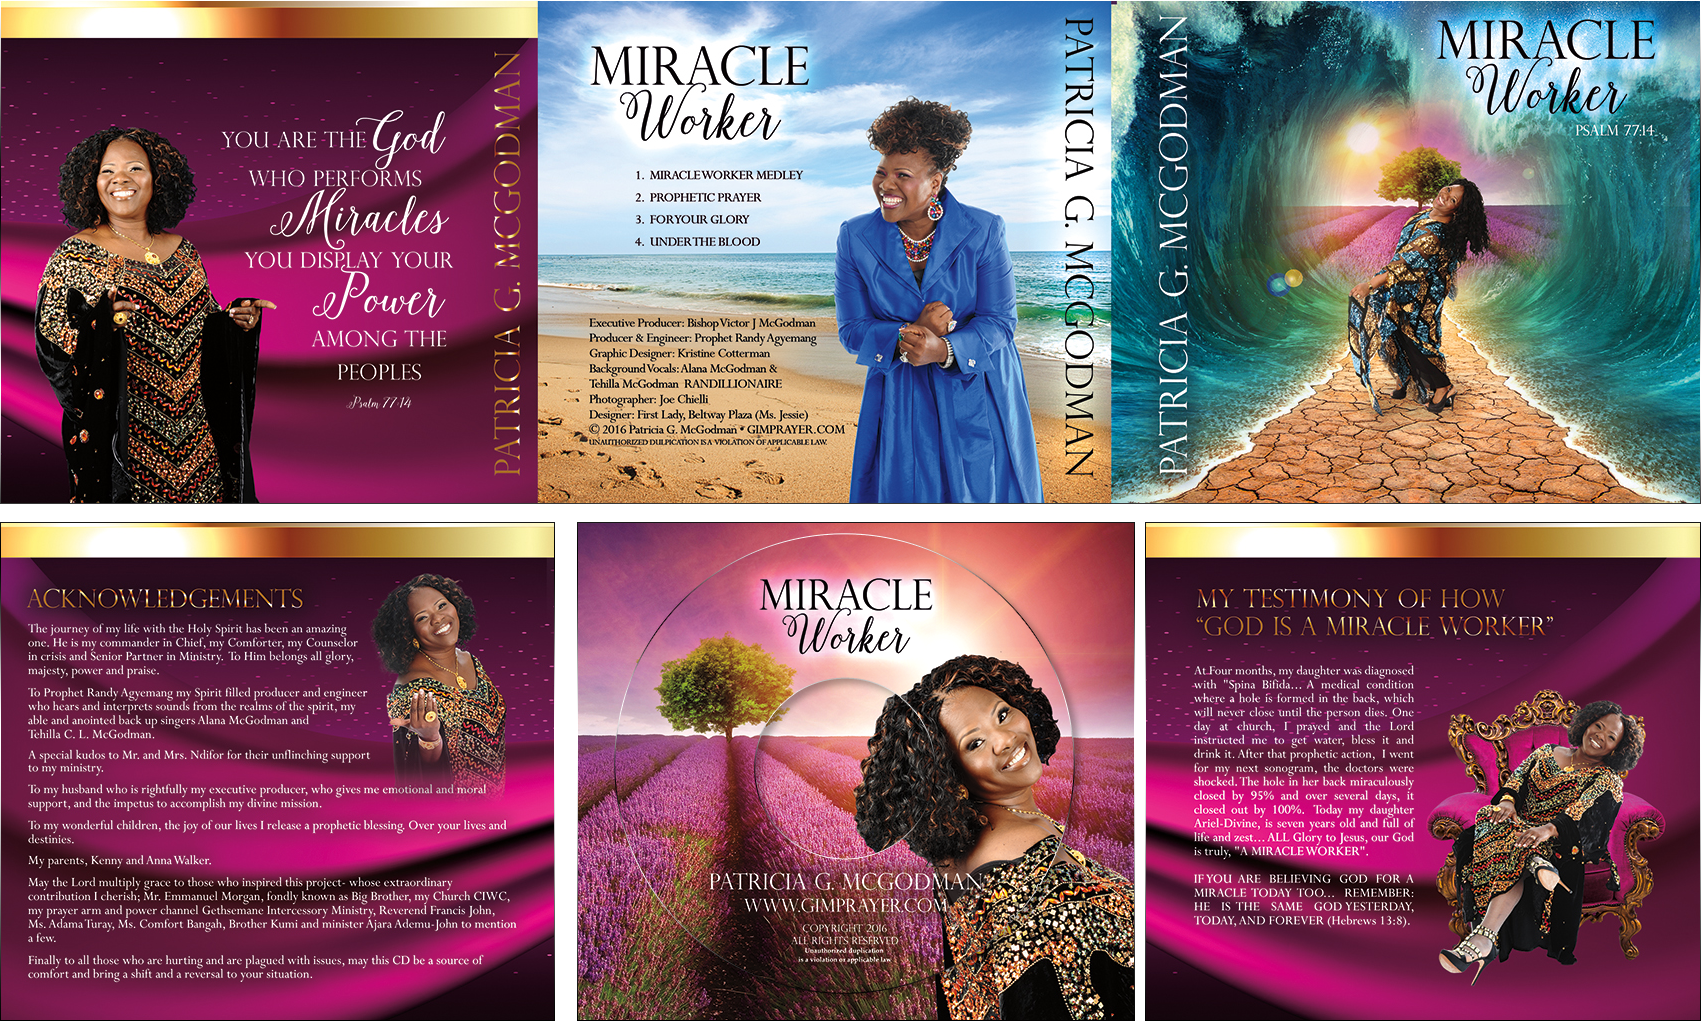 Miracle Worker CD Cover Design